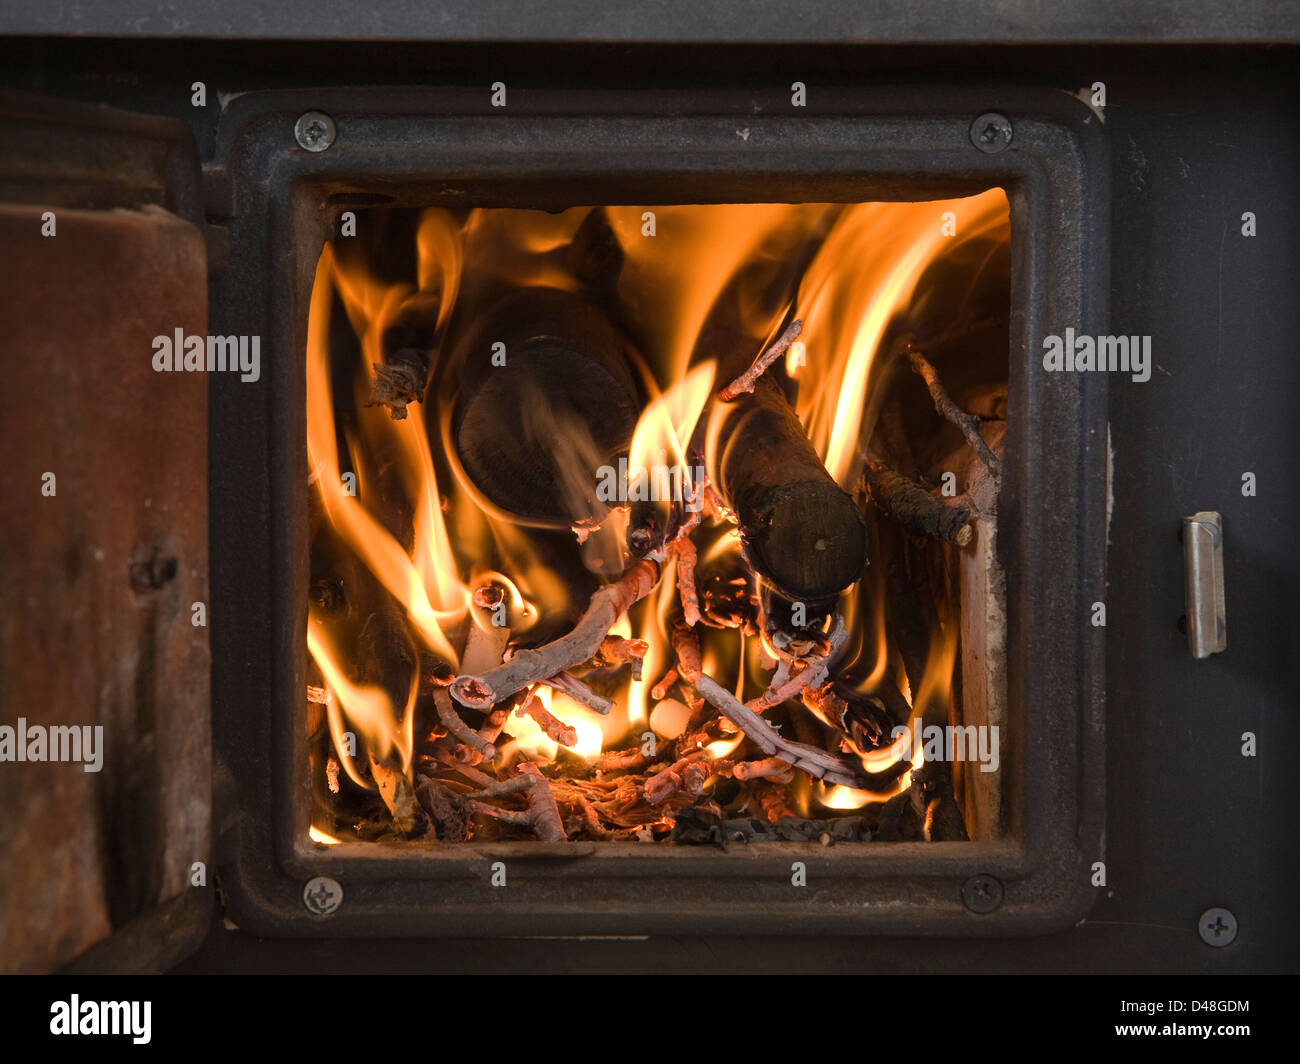 Woodstove, inside detail of fire-box - Stock Image